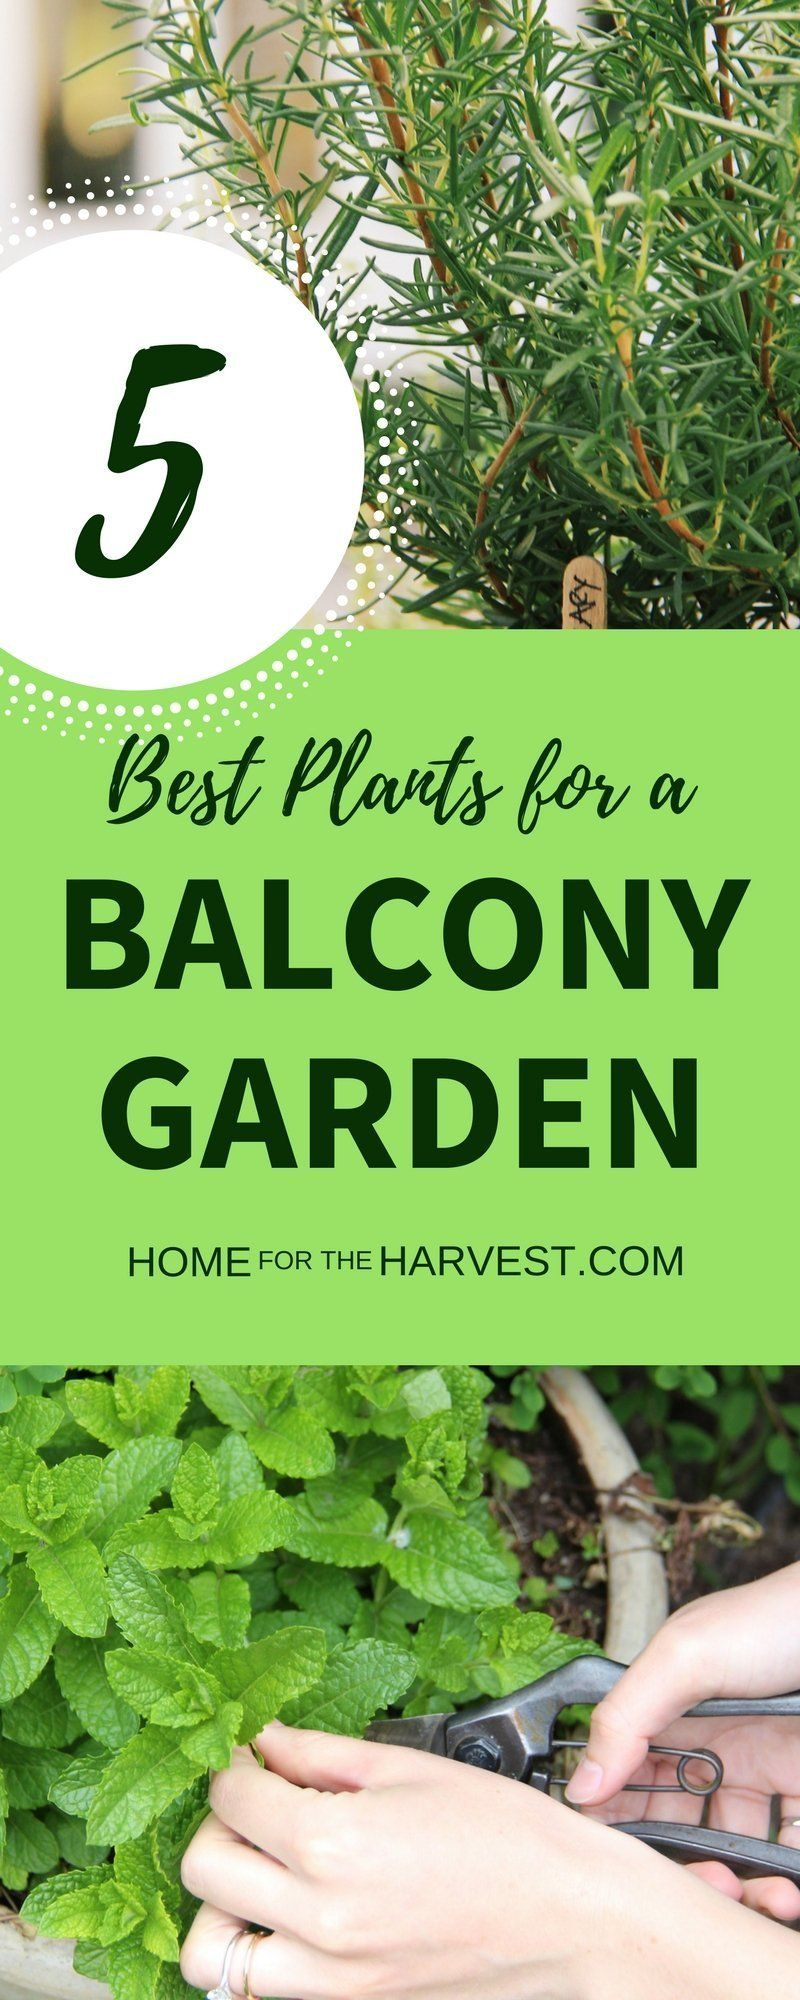 The Top 5 Plants for An Apartment Balcony Vegetable Garden #apartmentgardening